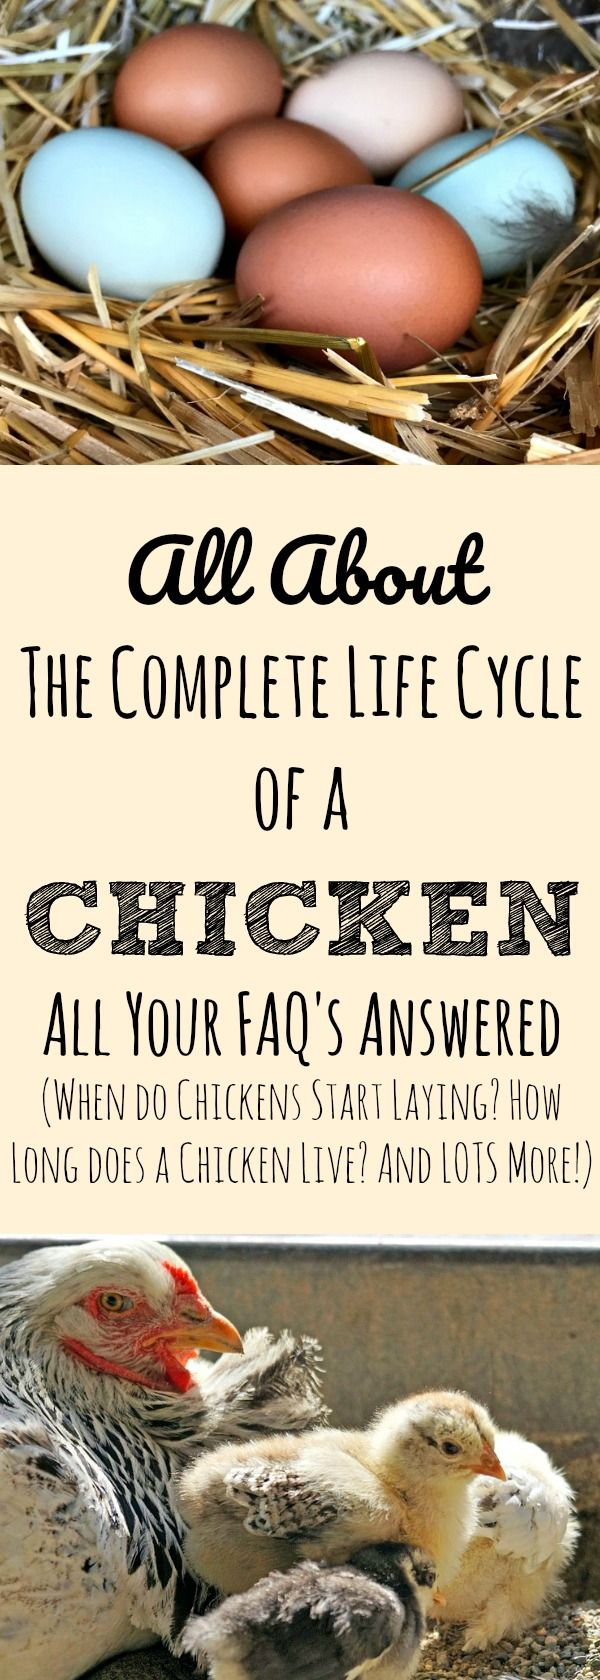 All the extra questions you will have as you get started in your chicken keeping journey about the life cycle of a hen. Questions like: How long does a hen live? How soon will my chicken lay eggs? When will my chick get feathers? Why isn't my hen laying as much? How long does a chick need heat? Harvesting is addressed too. Answer all your questions about a hen's life cycle, start to finish.